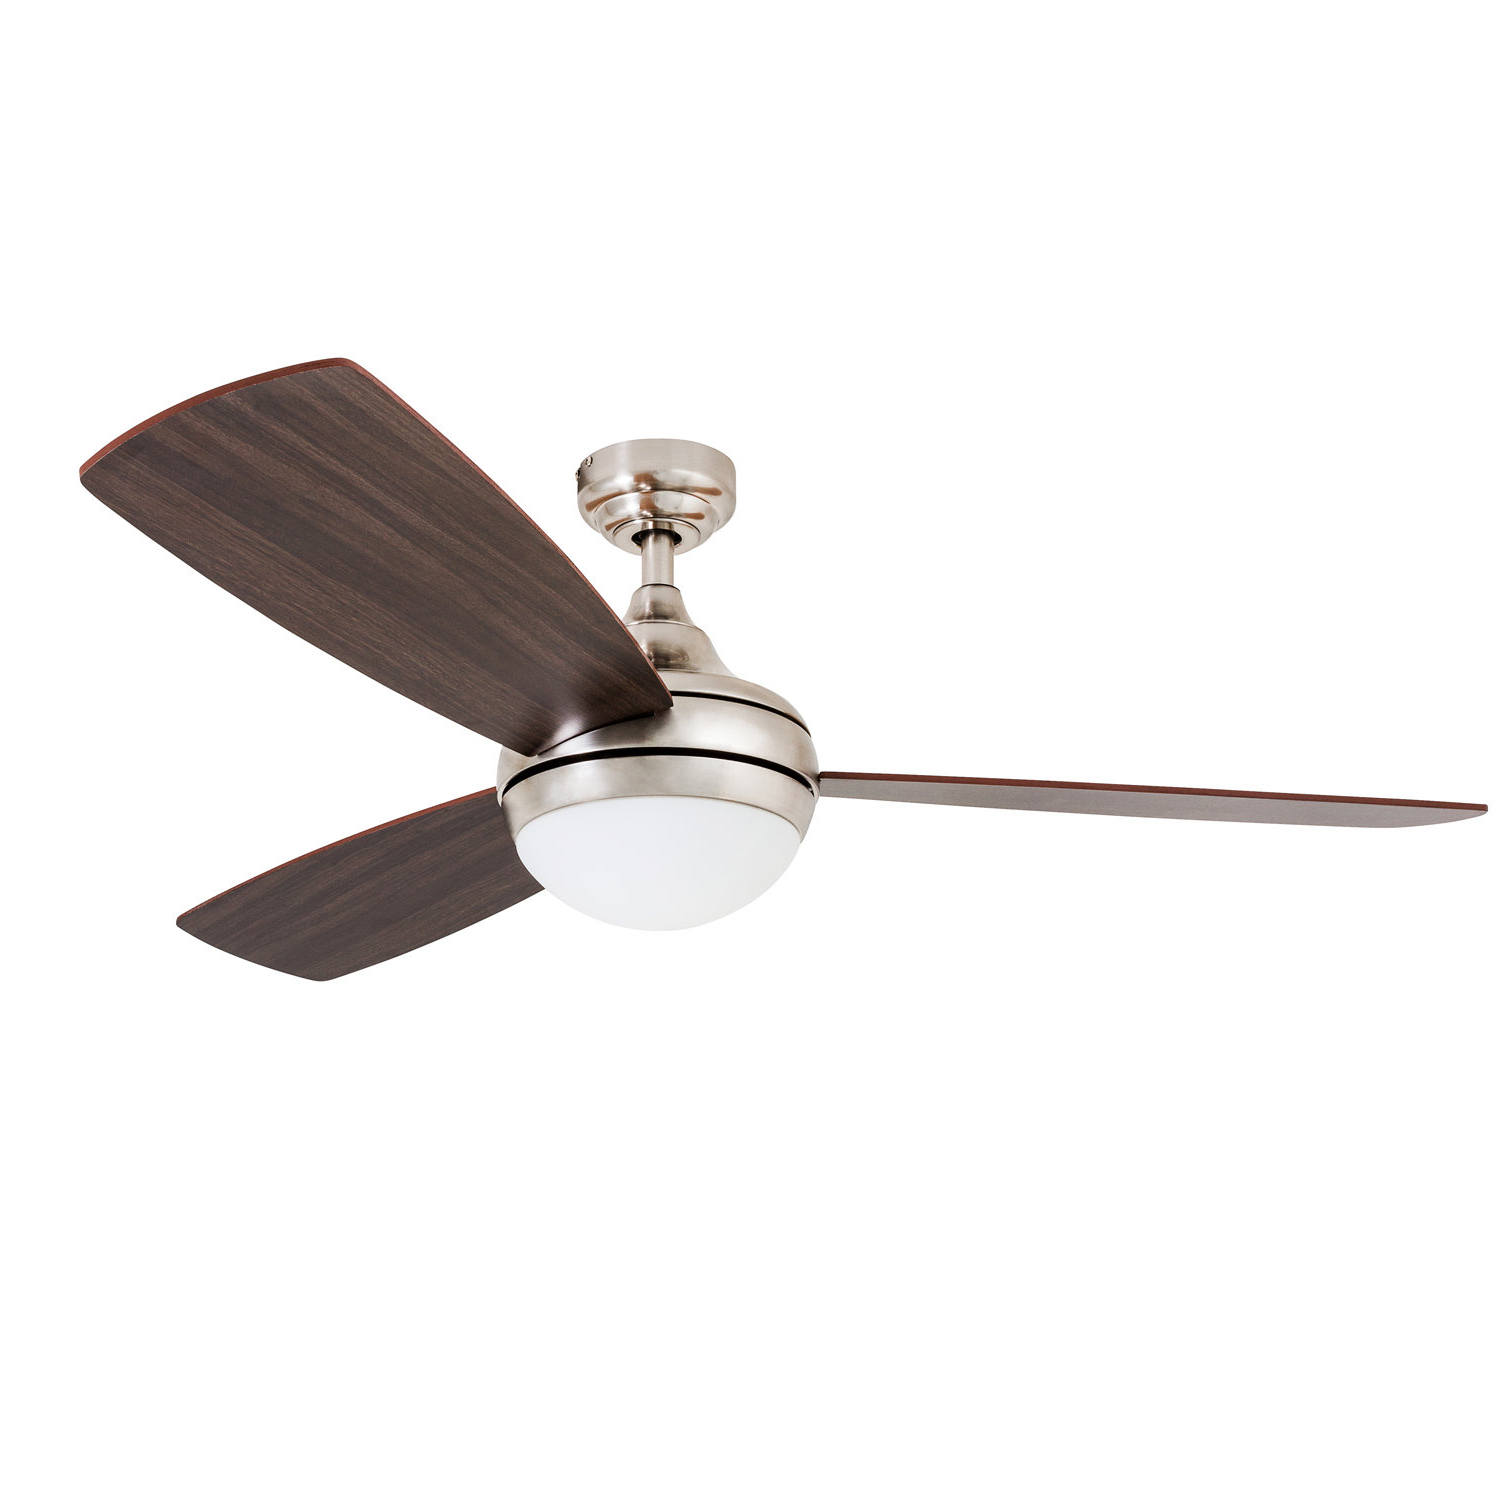 "Wrought Studio 52"" Alyce 3 Blade Led Ceiling Fan With Remote Control With Regard To Newest Alyce 3 Blade Led Ceiling Fans With Remote Control (View 20 of 20)"